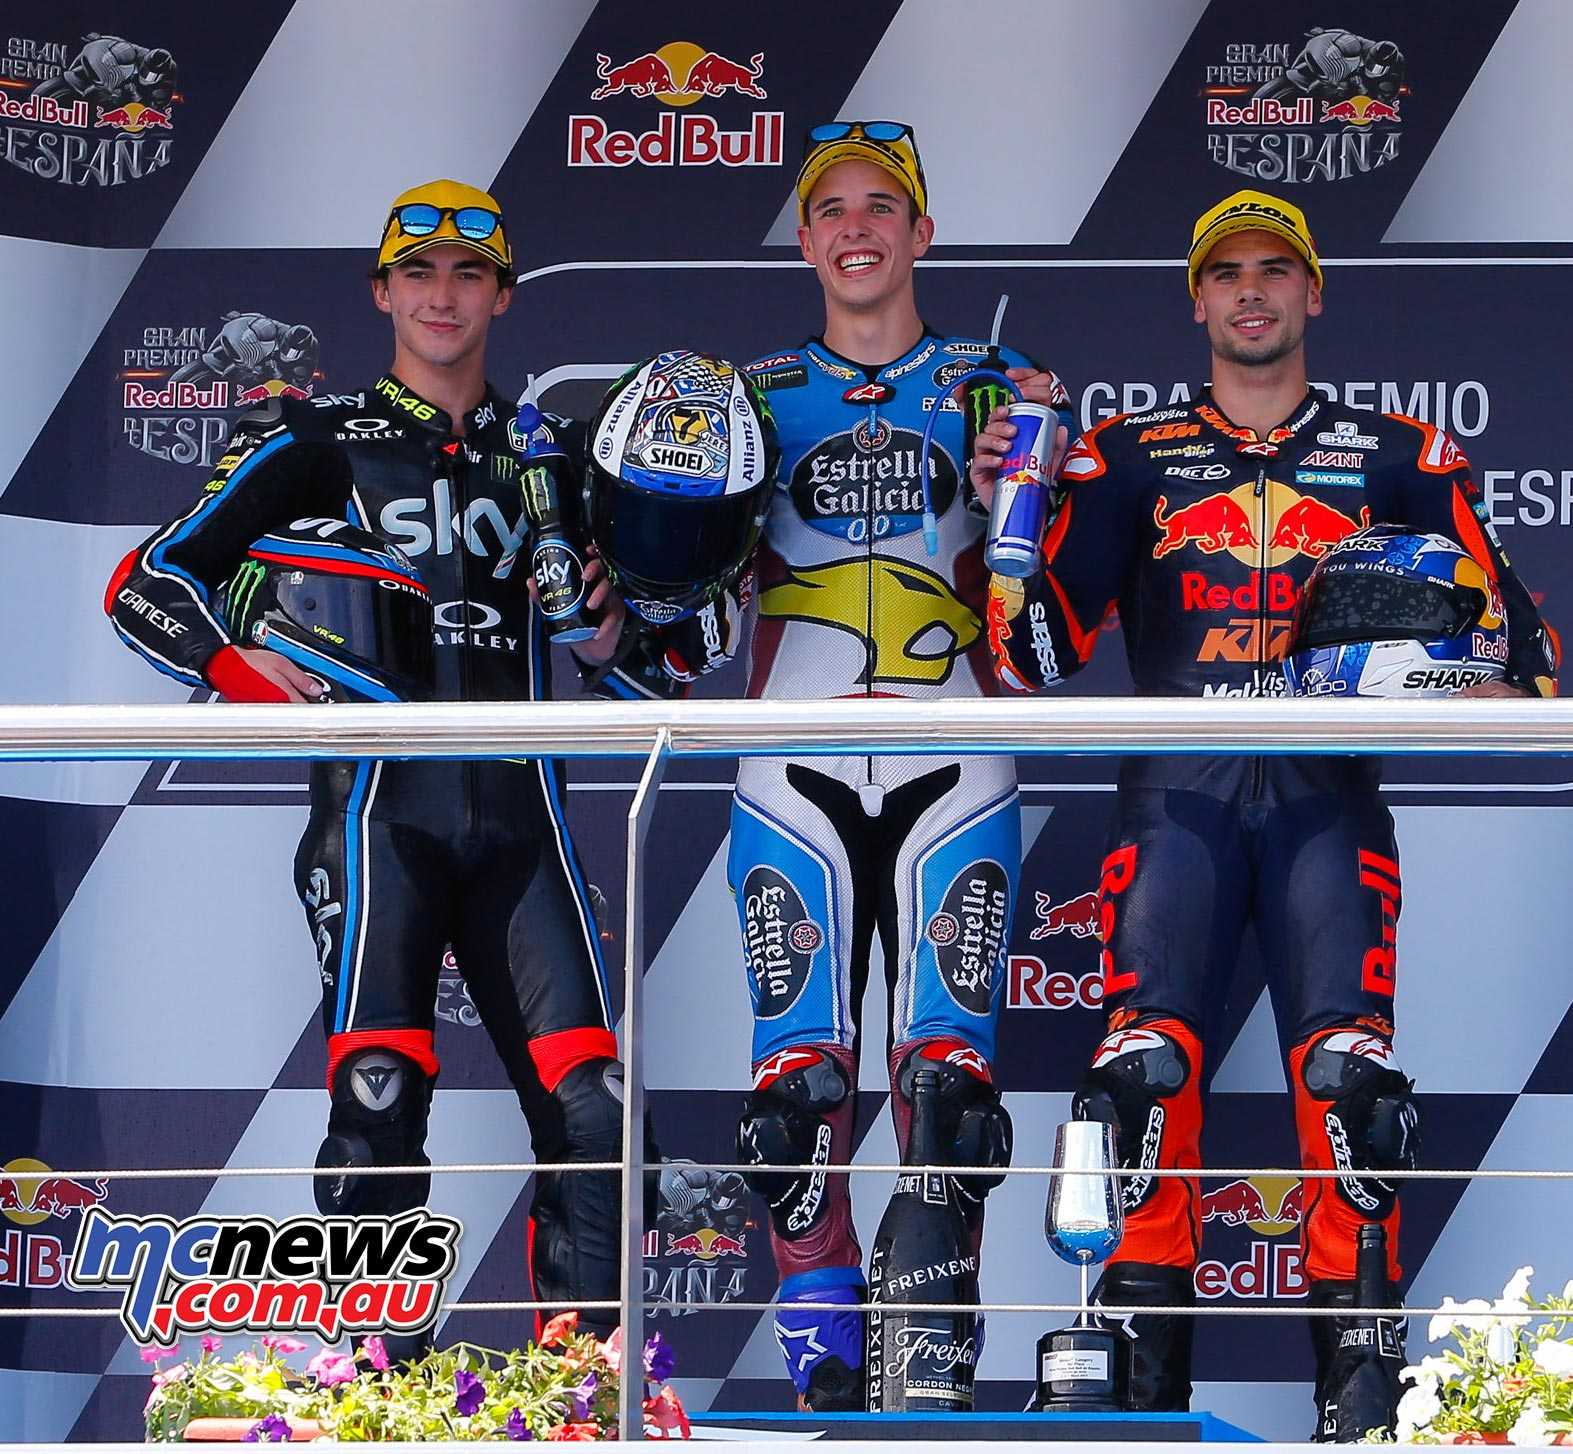 Alex Marquez topped thje Moto2 Podium at Jerez 2017